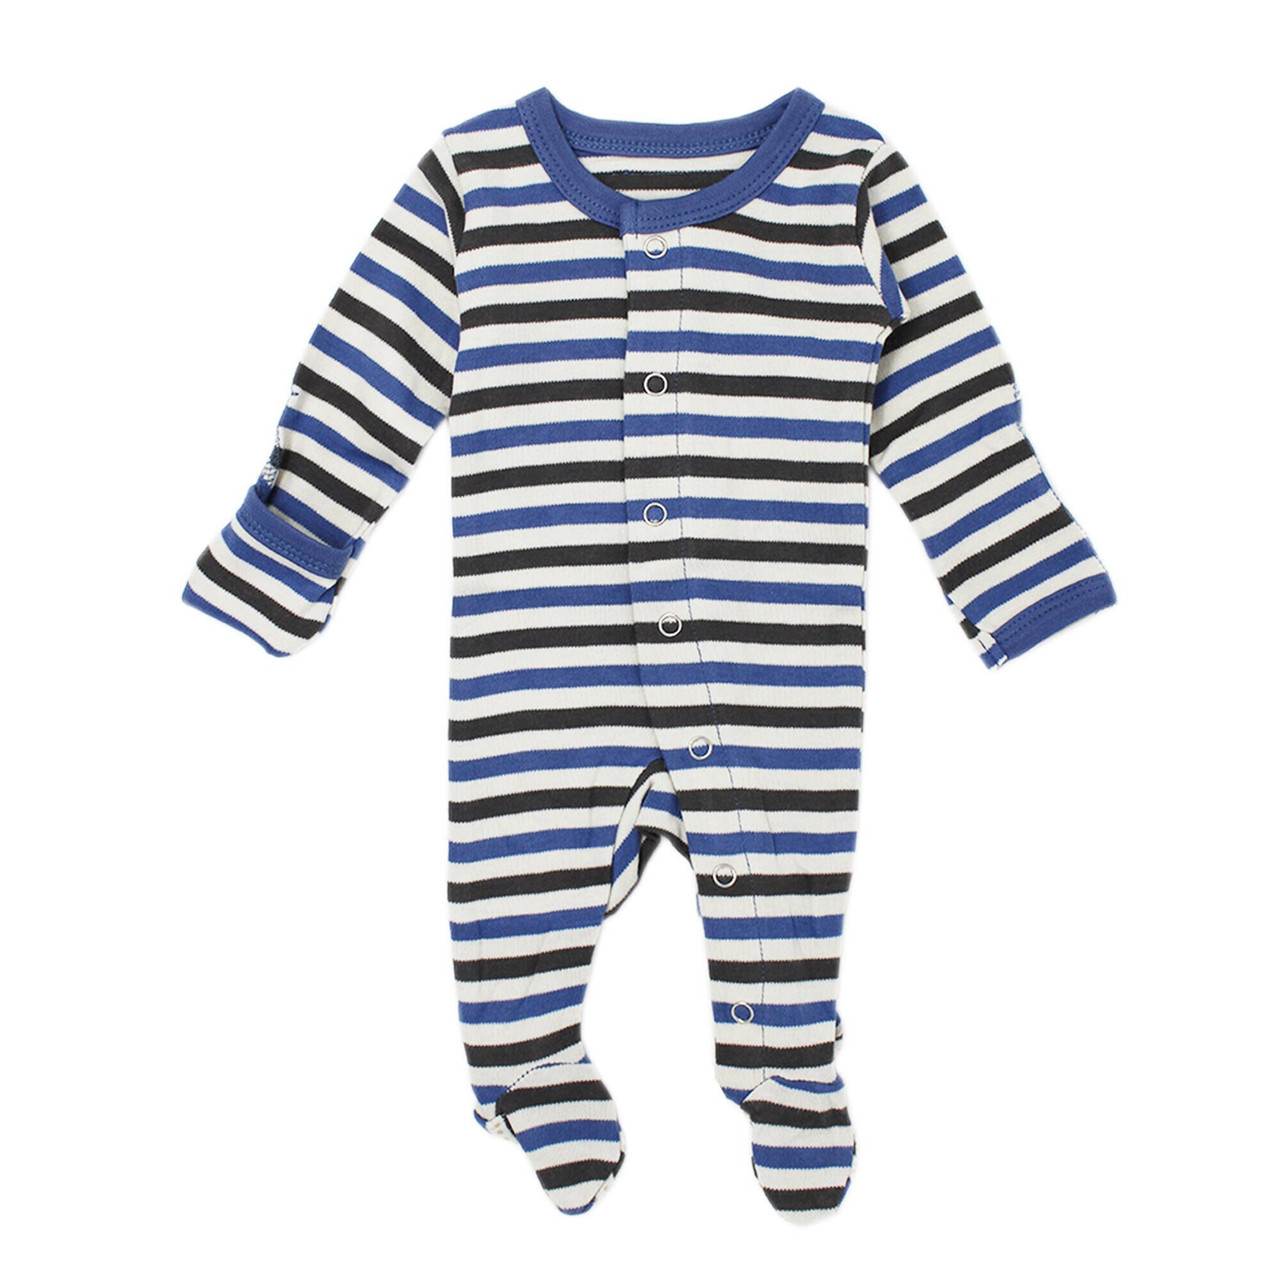 Organic Jumpsuit in Slate Stripe, Flat